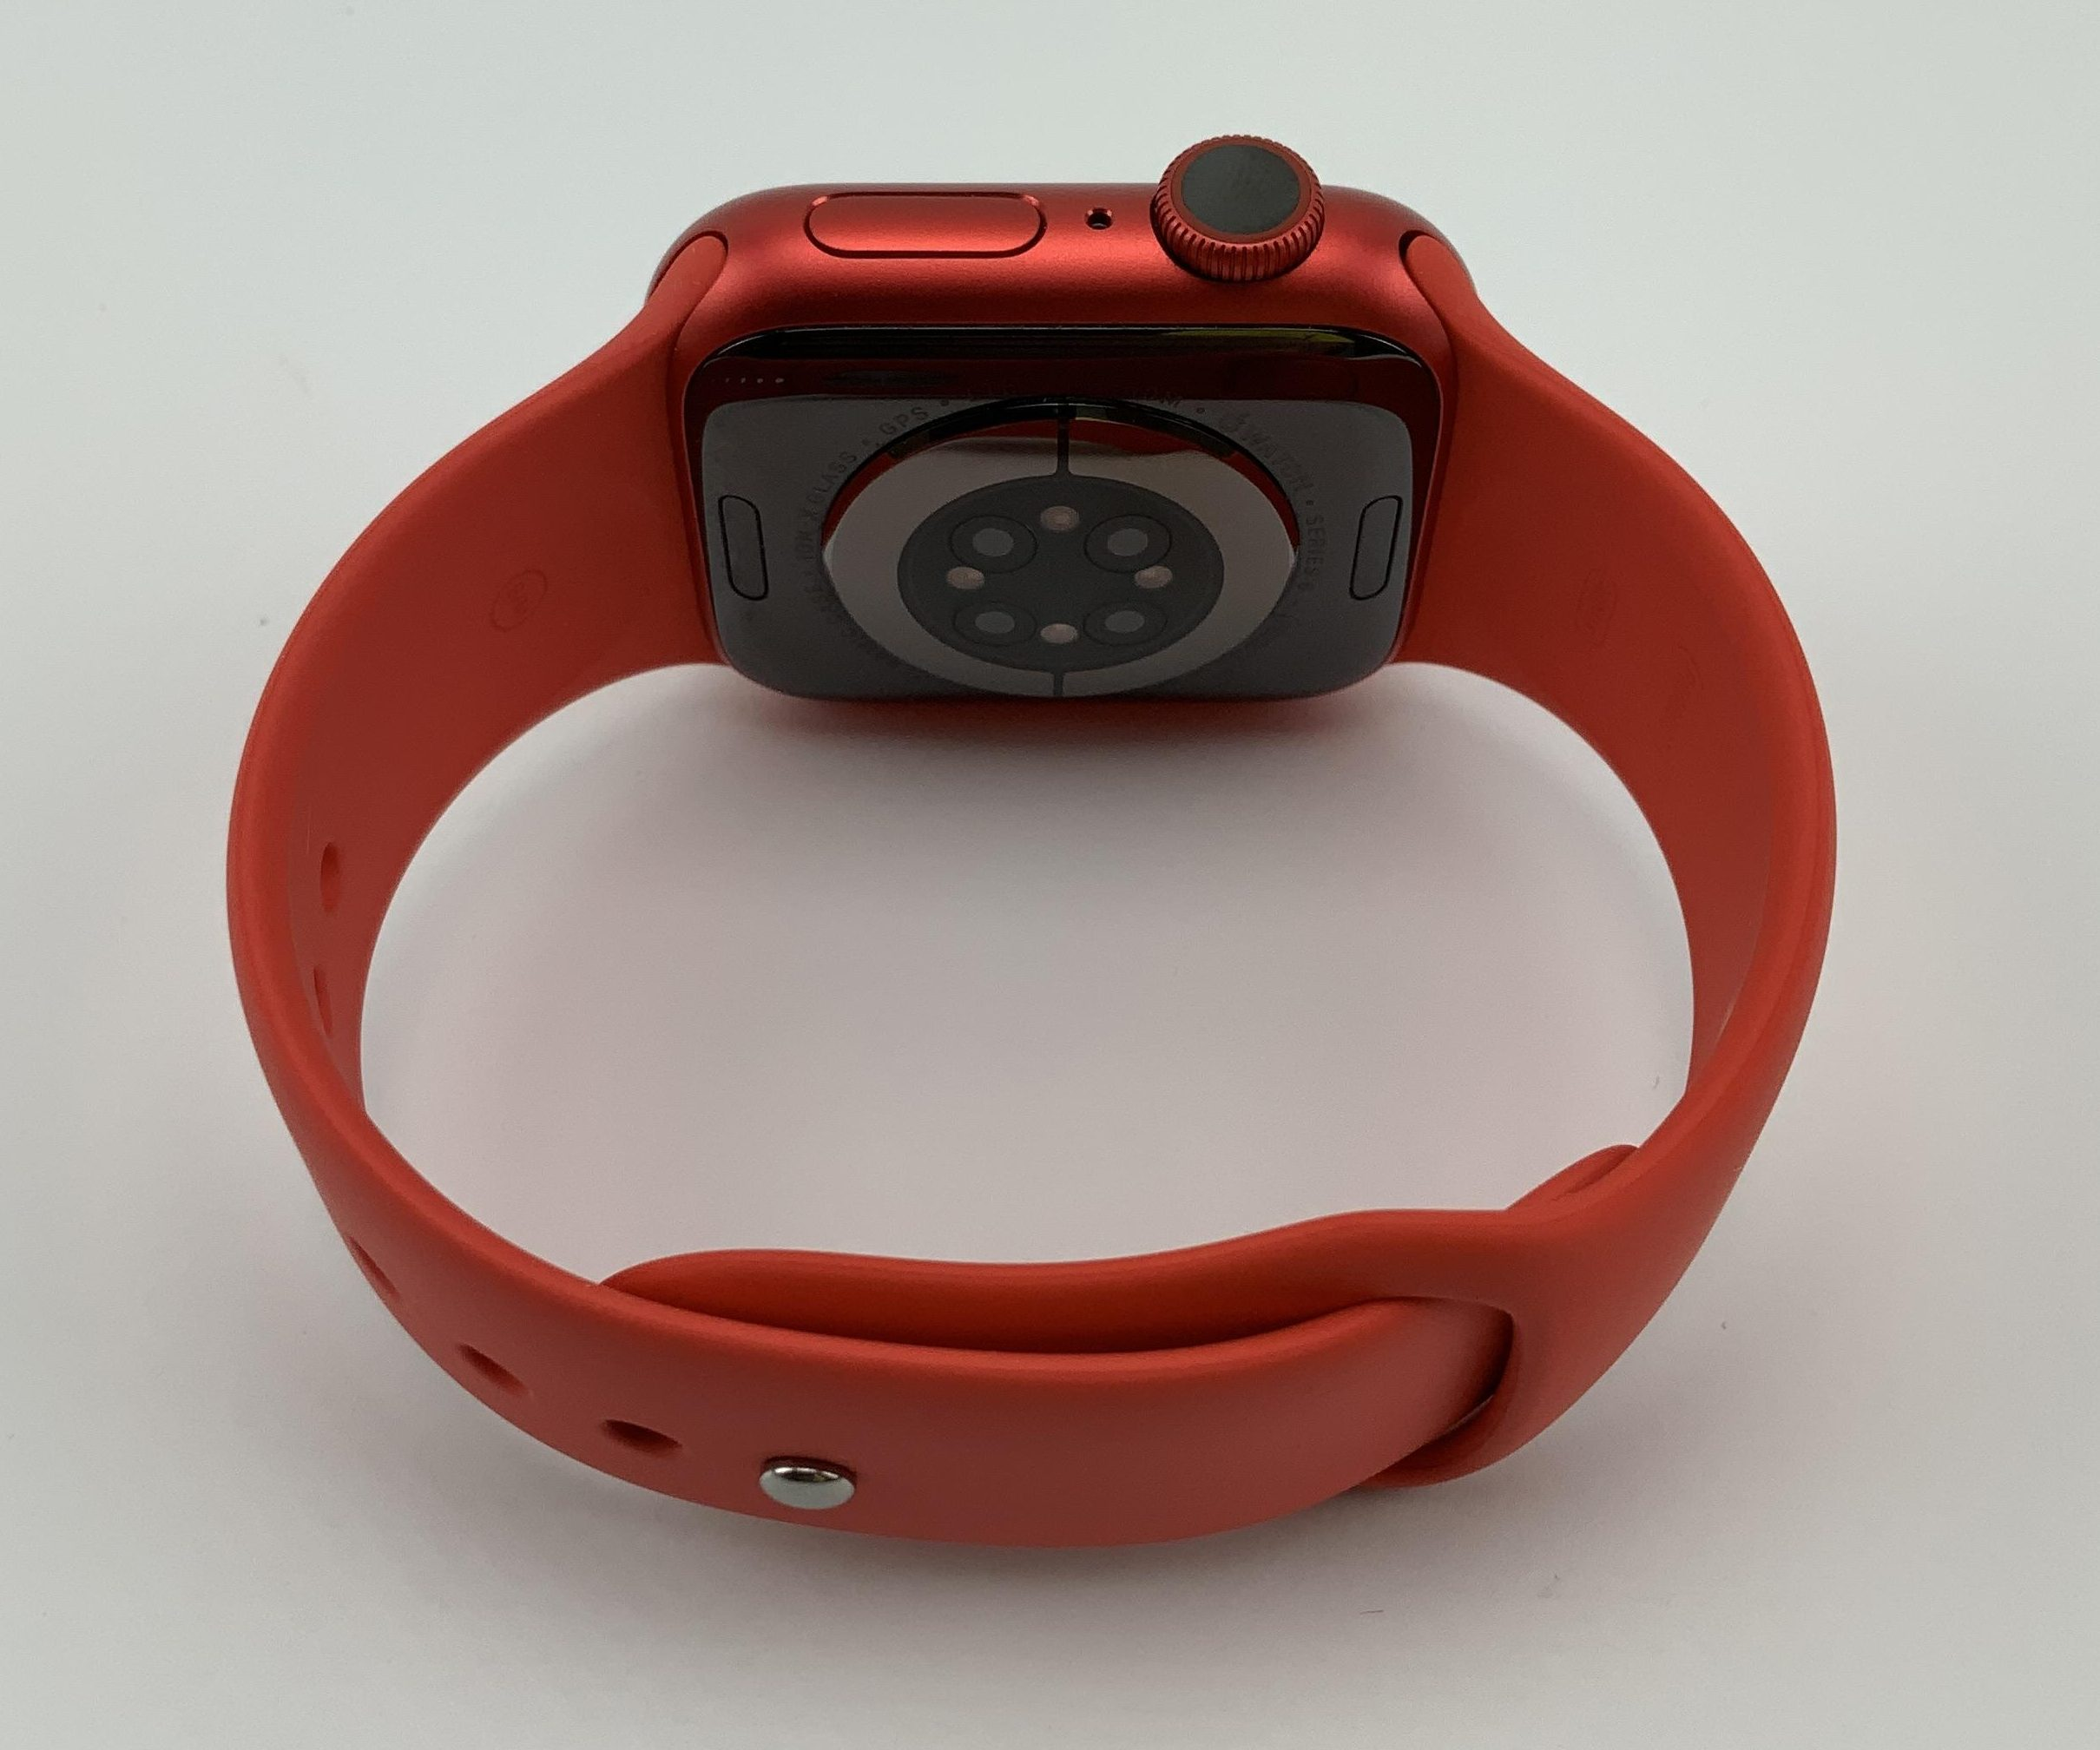 Watch Series 6 Aluminum Cellular (40mm), Red, image 2